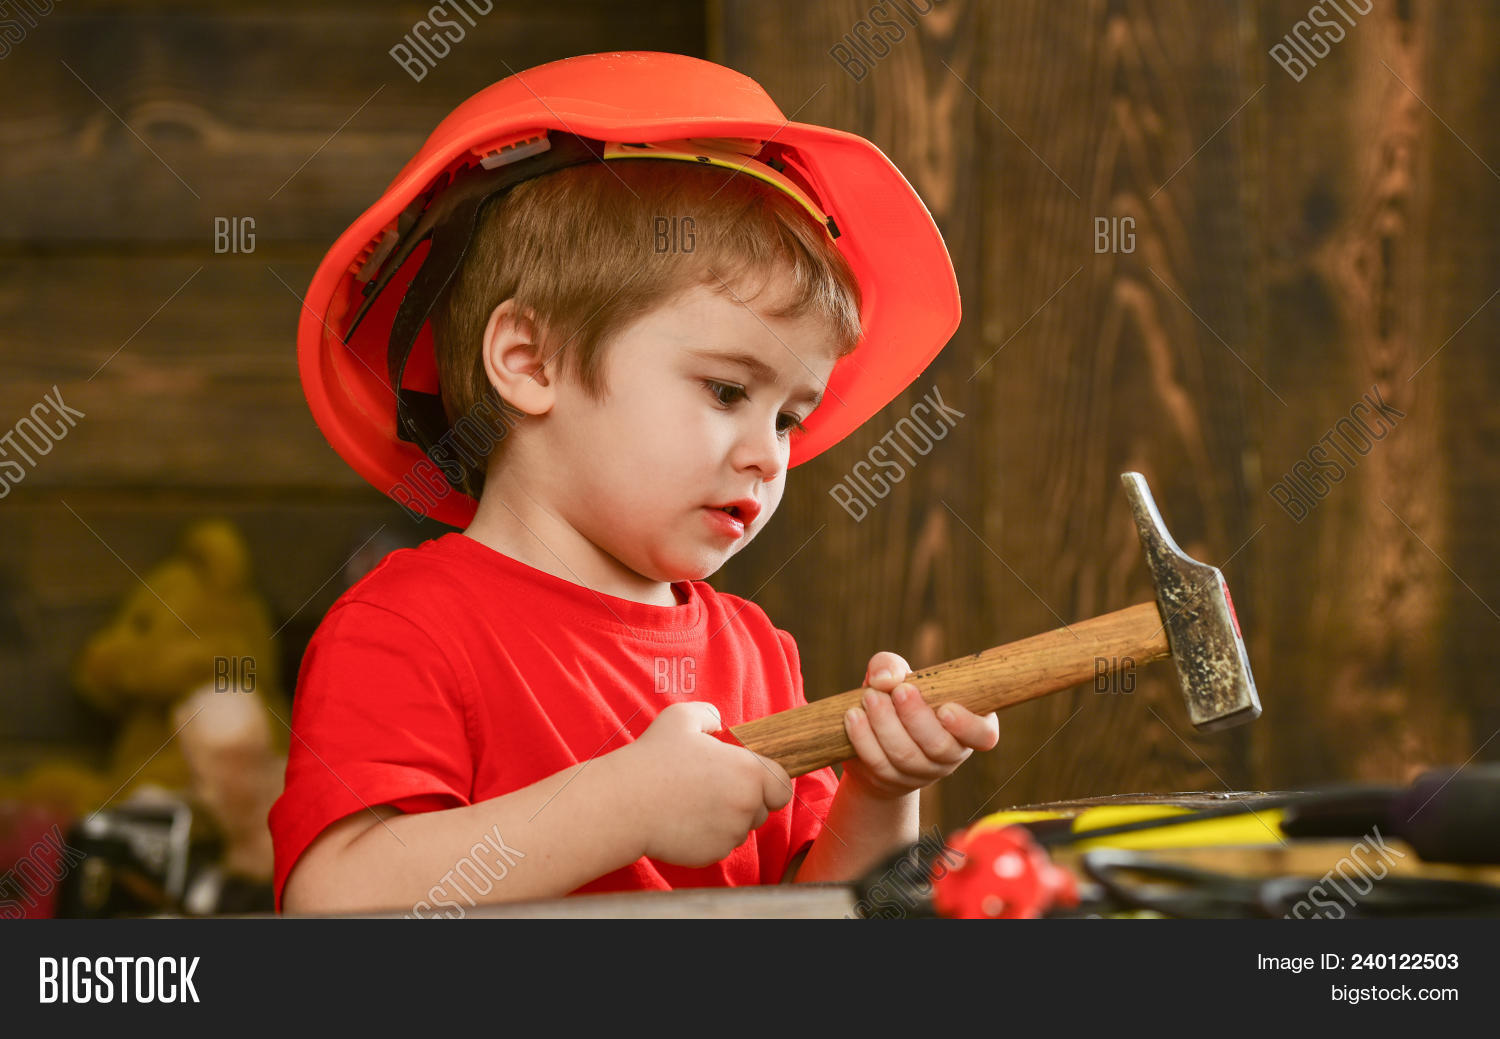 Kid Boy Hammering Nail Into Wooden Board. Child In Helmet Cute Playing As Builder Or Repairer, Repai